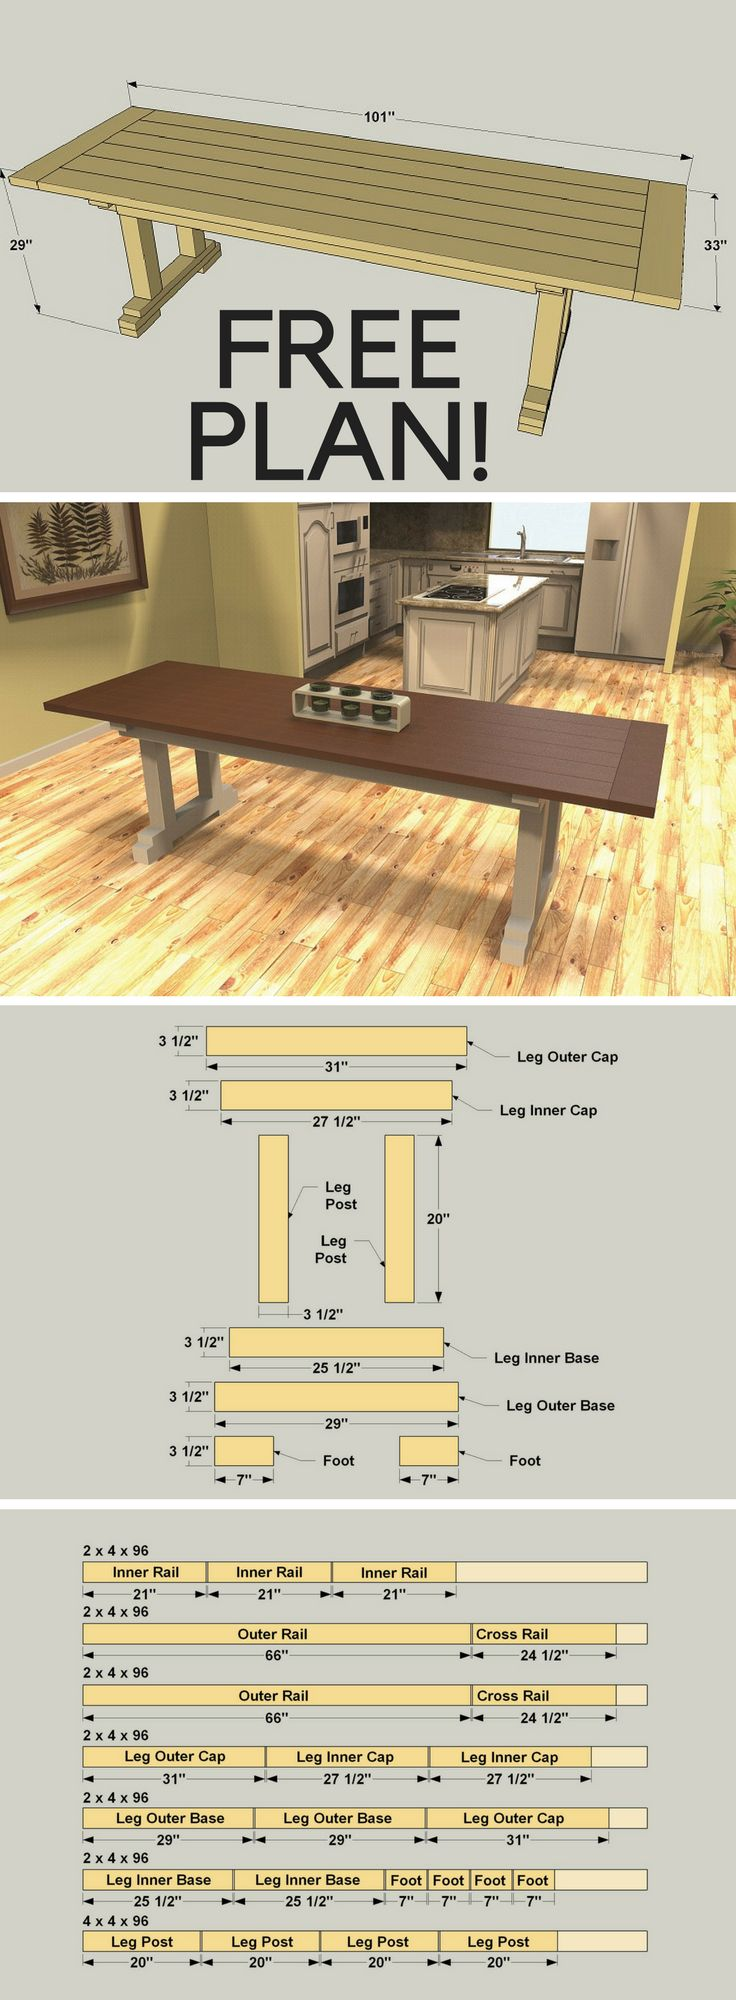 How to build a DIY Rustic Farmhouse Table | Free printable project plans on buildsomething.com | The classic look of a farmhouse table is as popular today as ever—and not just in farmhouses. A farmhouse table looks great in an urban loft or suburban home. That's because this type of table offers simple styling, solid construction, and versatility that make it useful and beautiful.